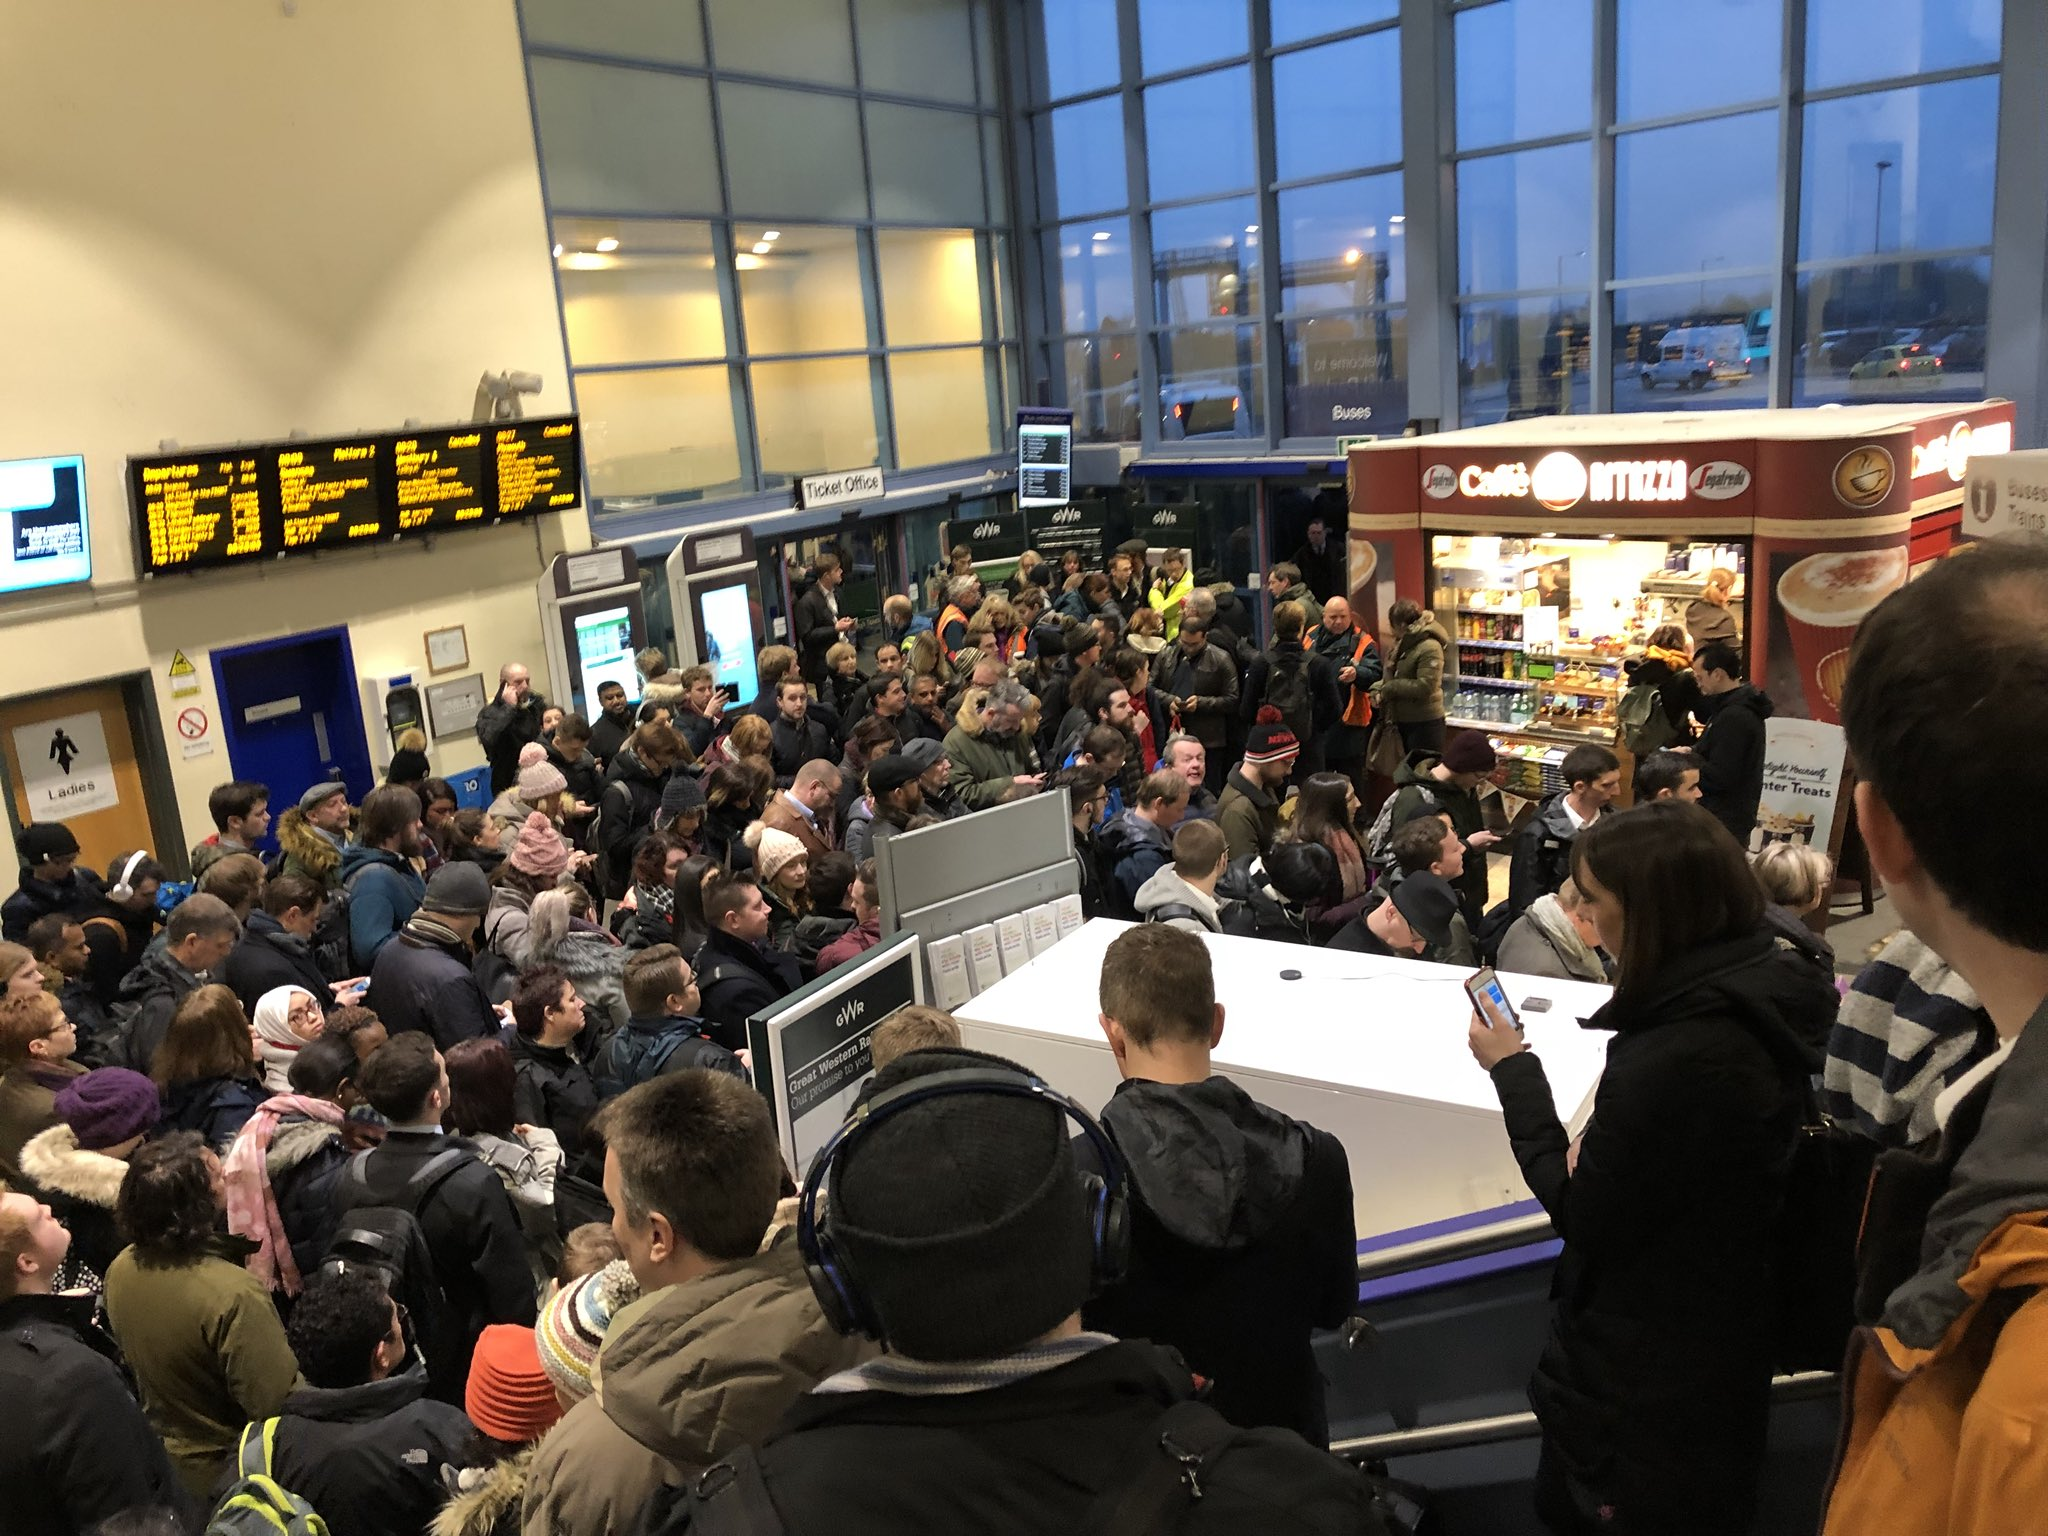 Chaos at Bristol Parkway Station. Picture: Phil Shean